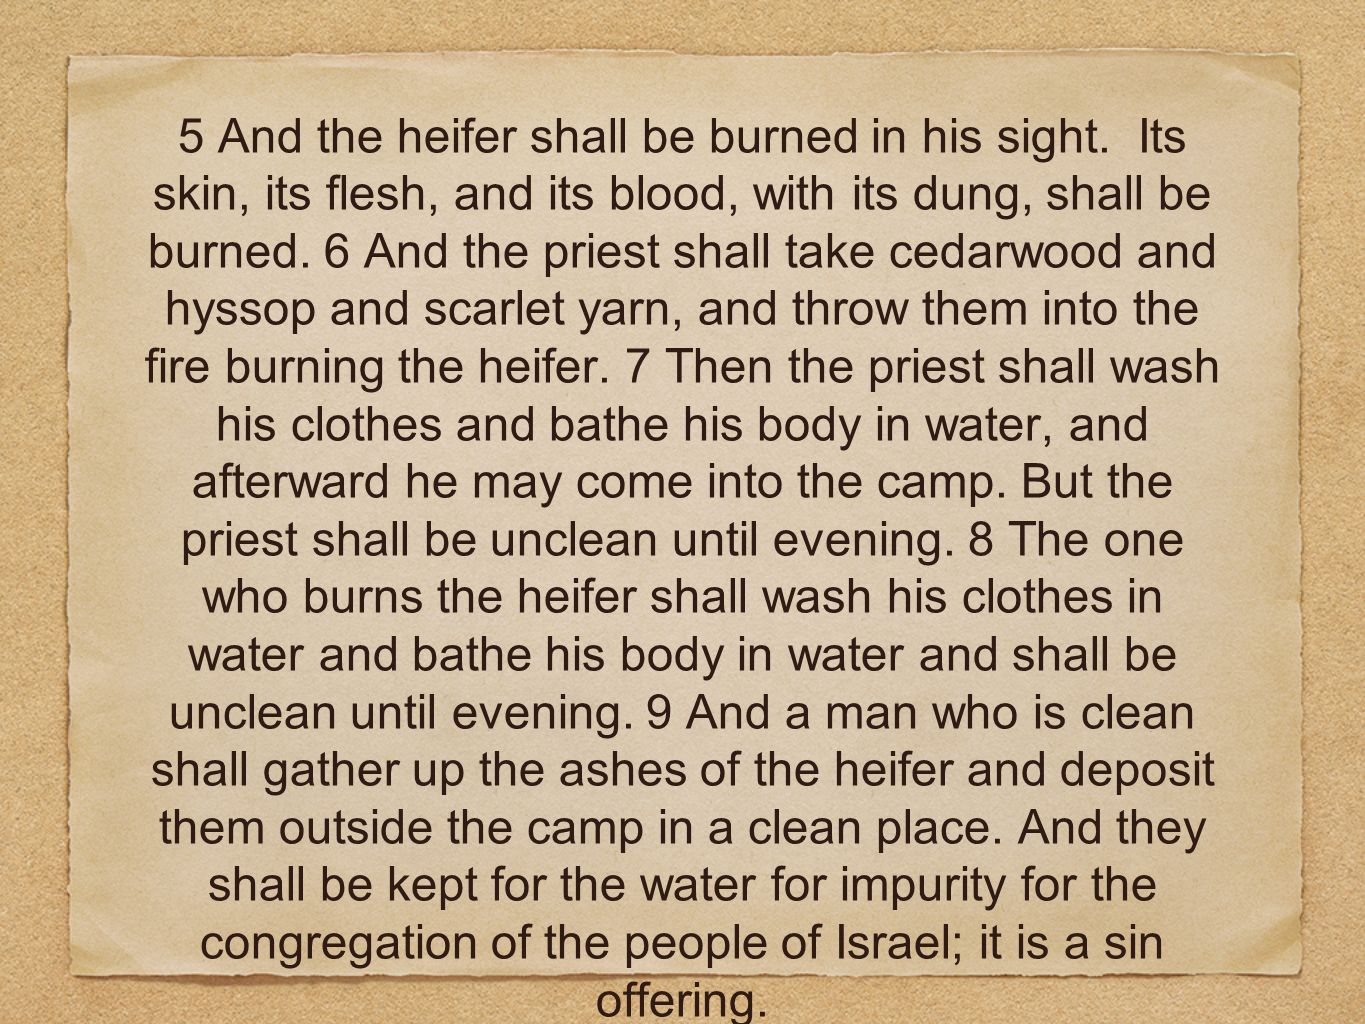 5 And the heifer shall be burned in his sight